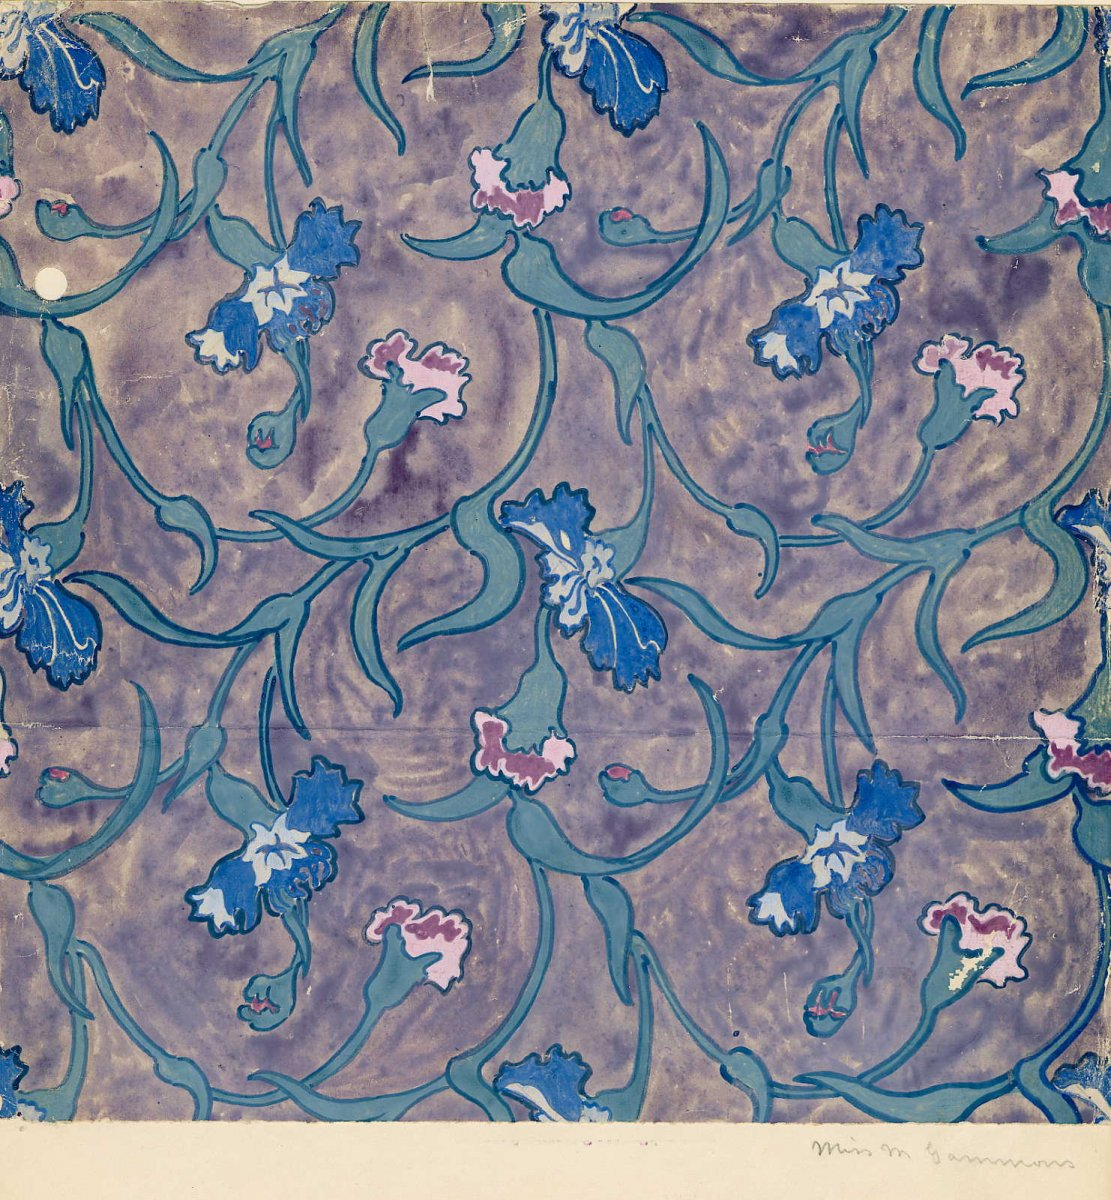 Textile surface pattern design, gouache on paper, by Molly Gammons, 1917